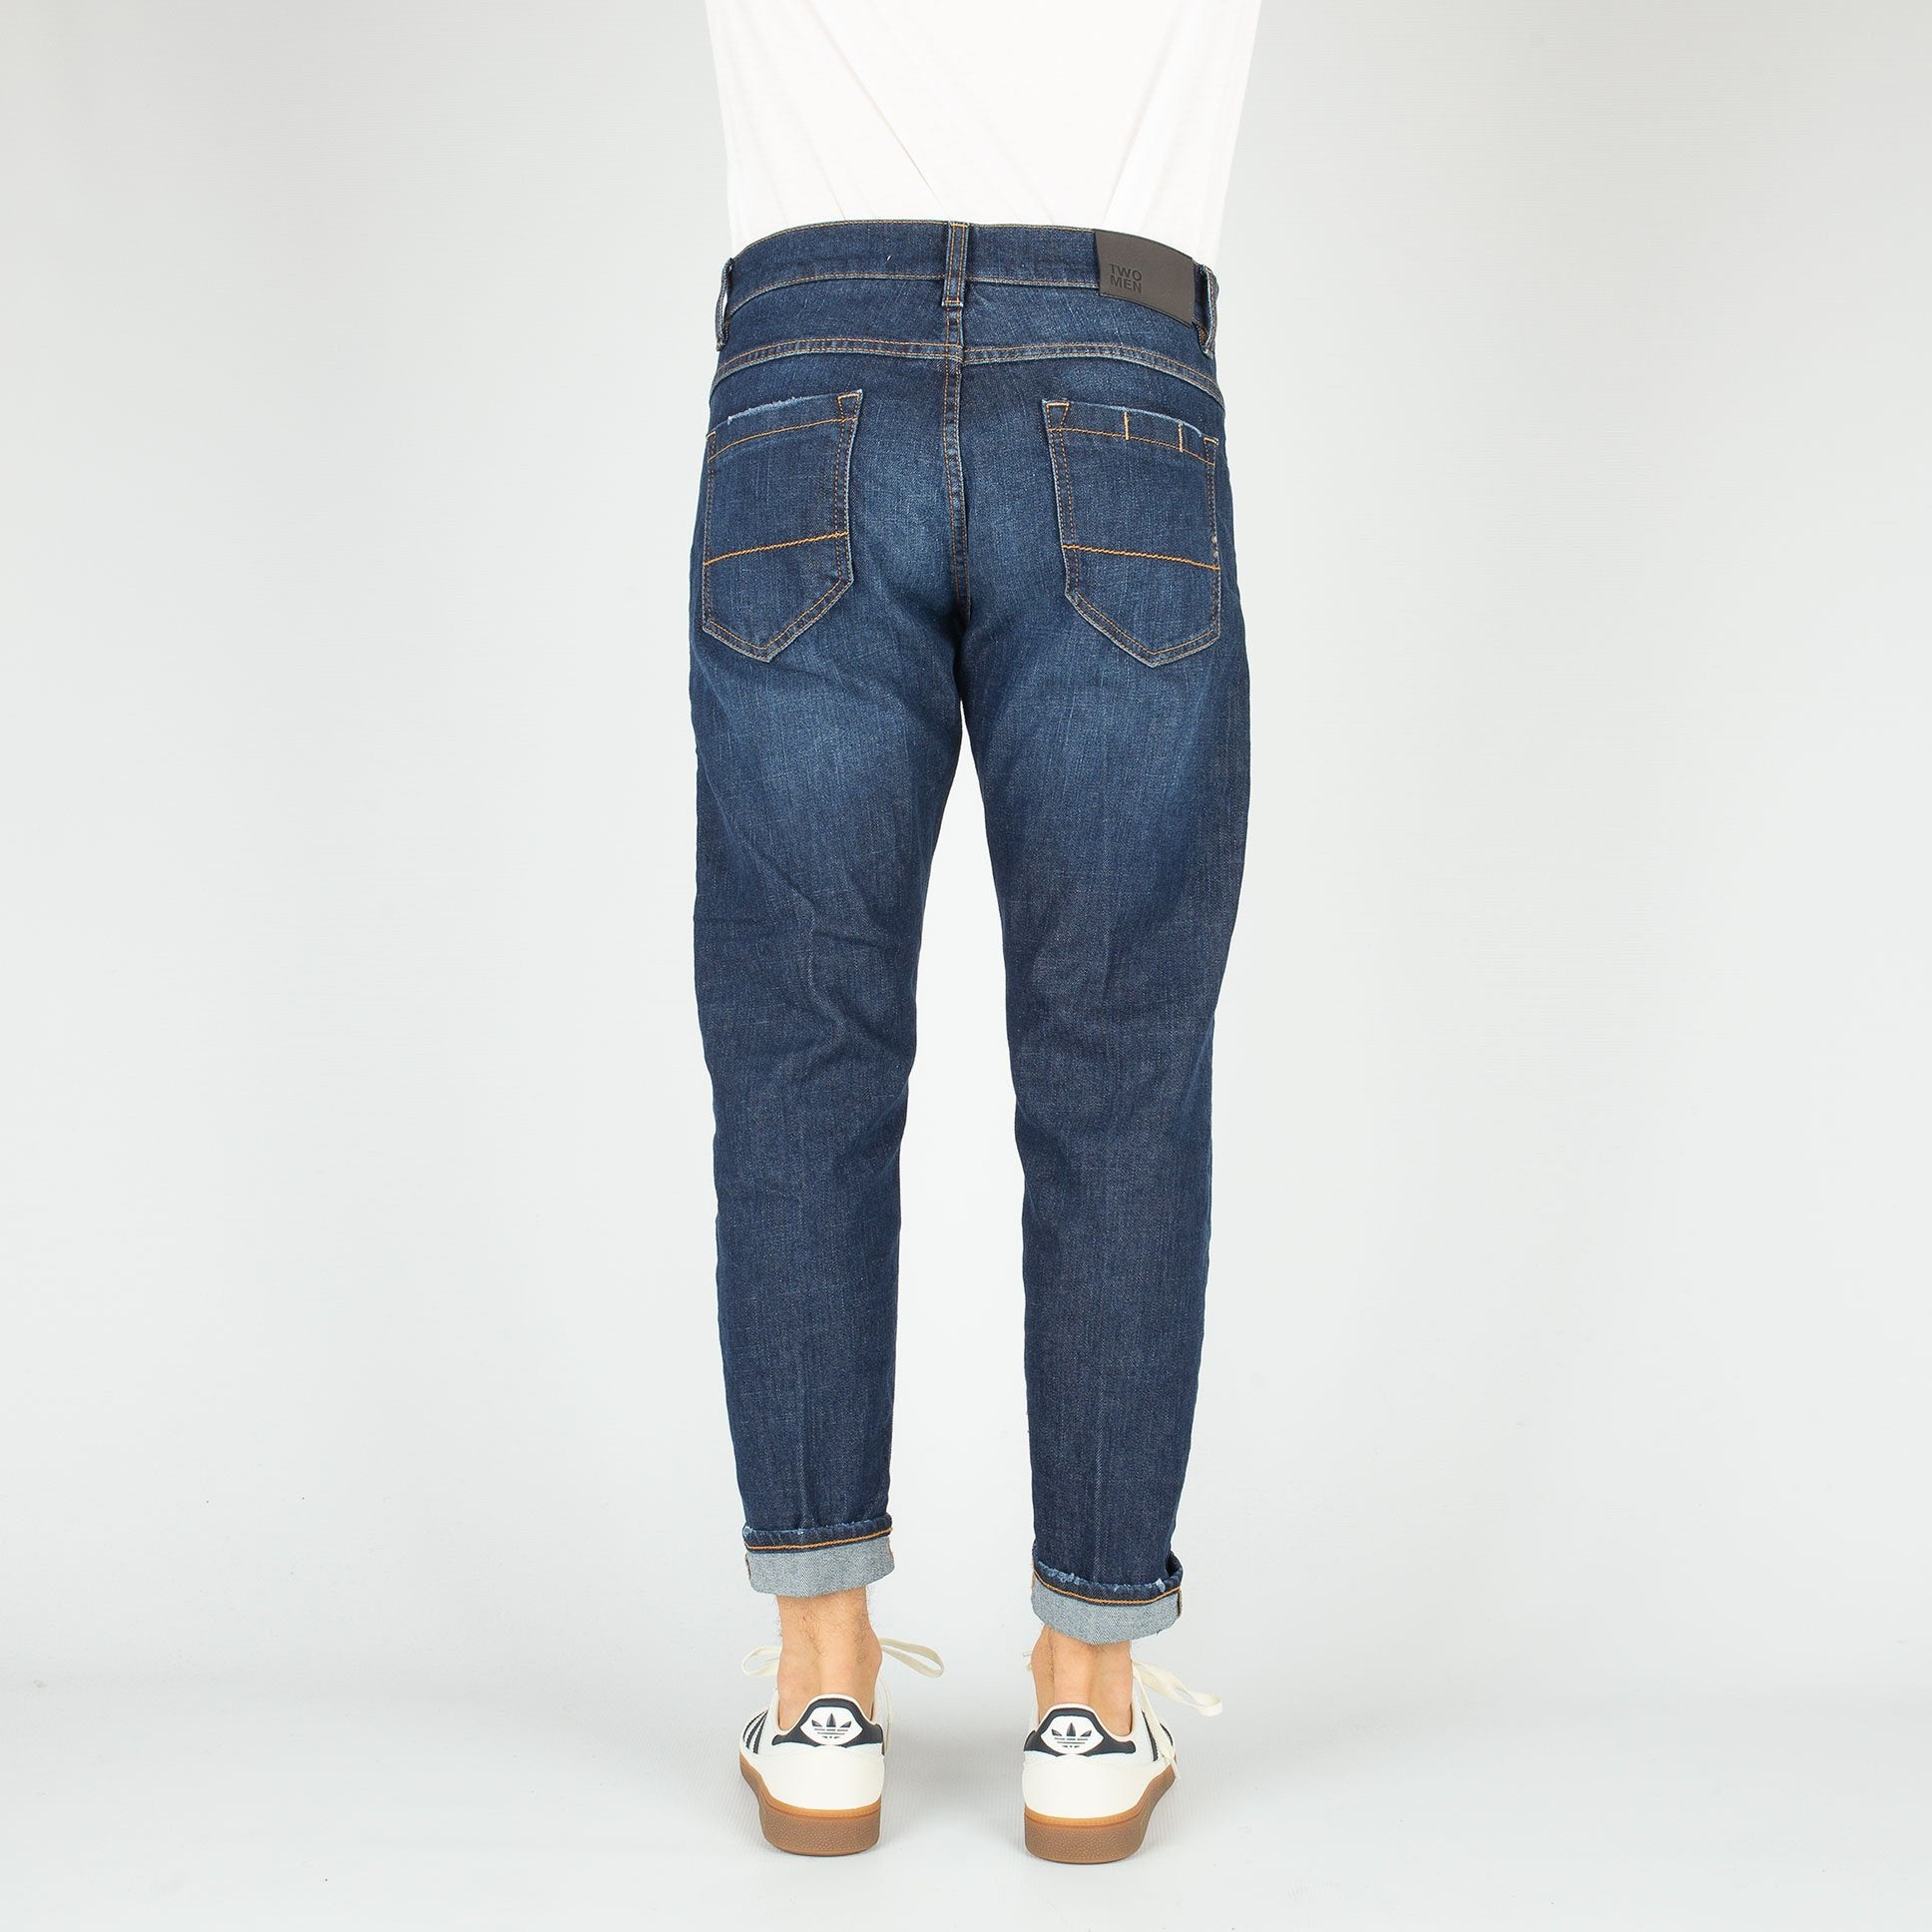 Denim 'Farran' - Vintage Scuro